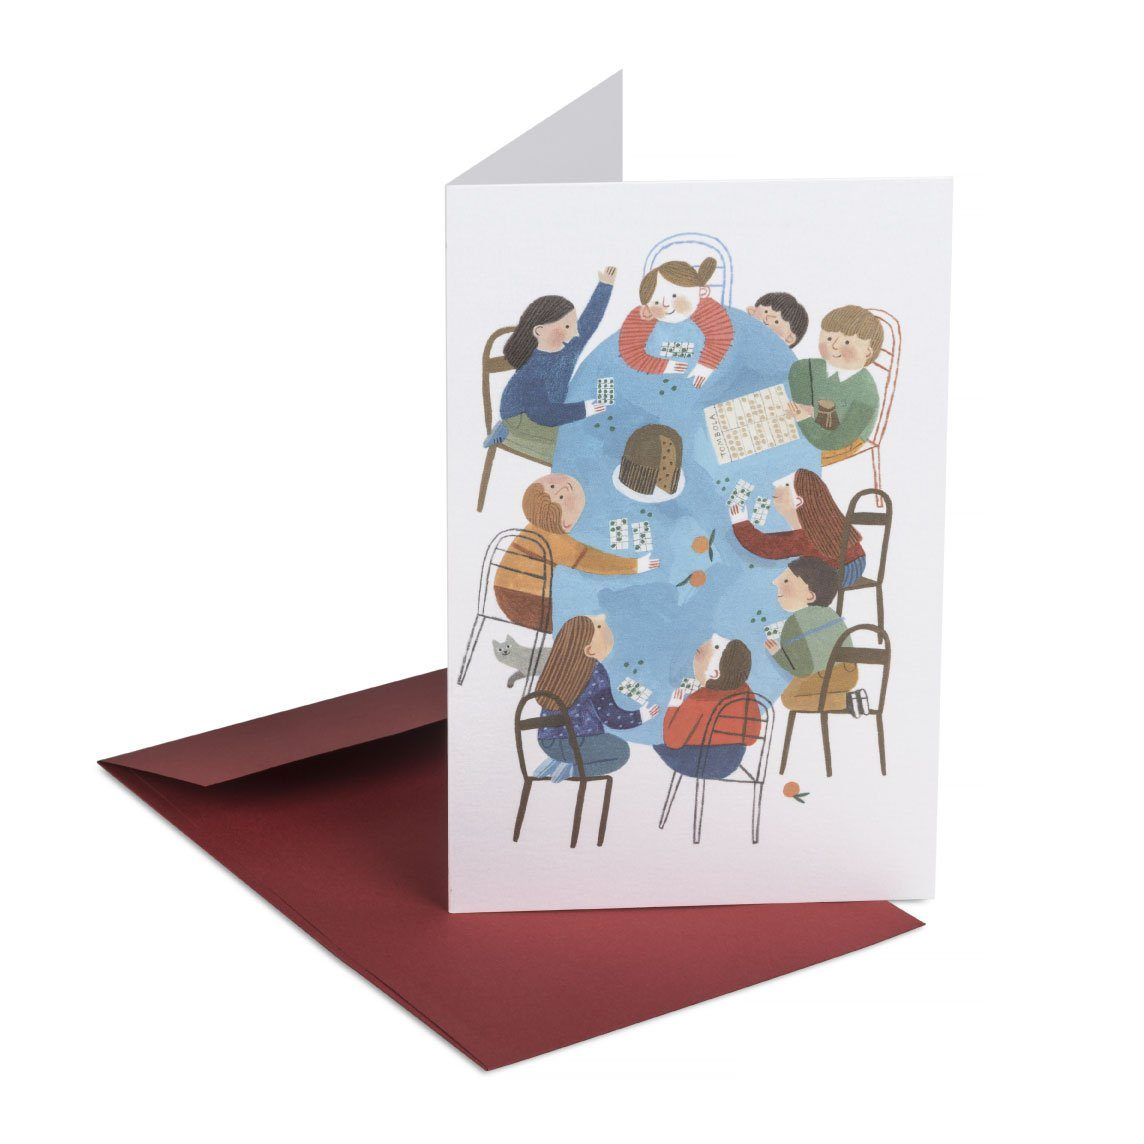 Tombola! Greeting Card - Christmas Cards - MULTIFOLIA ATELIER di Rita Girola - Naiise